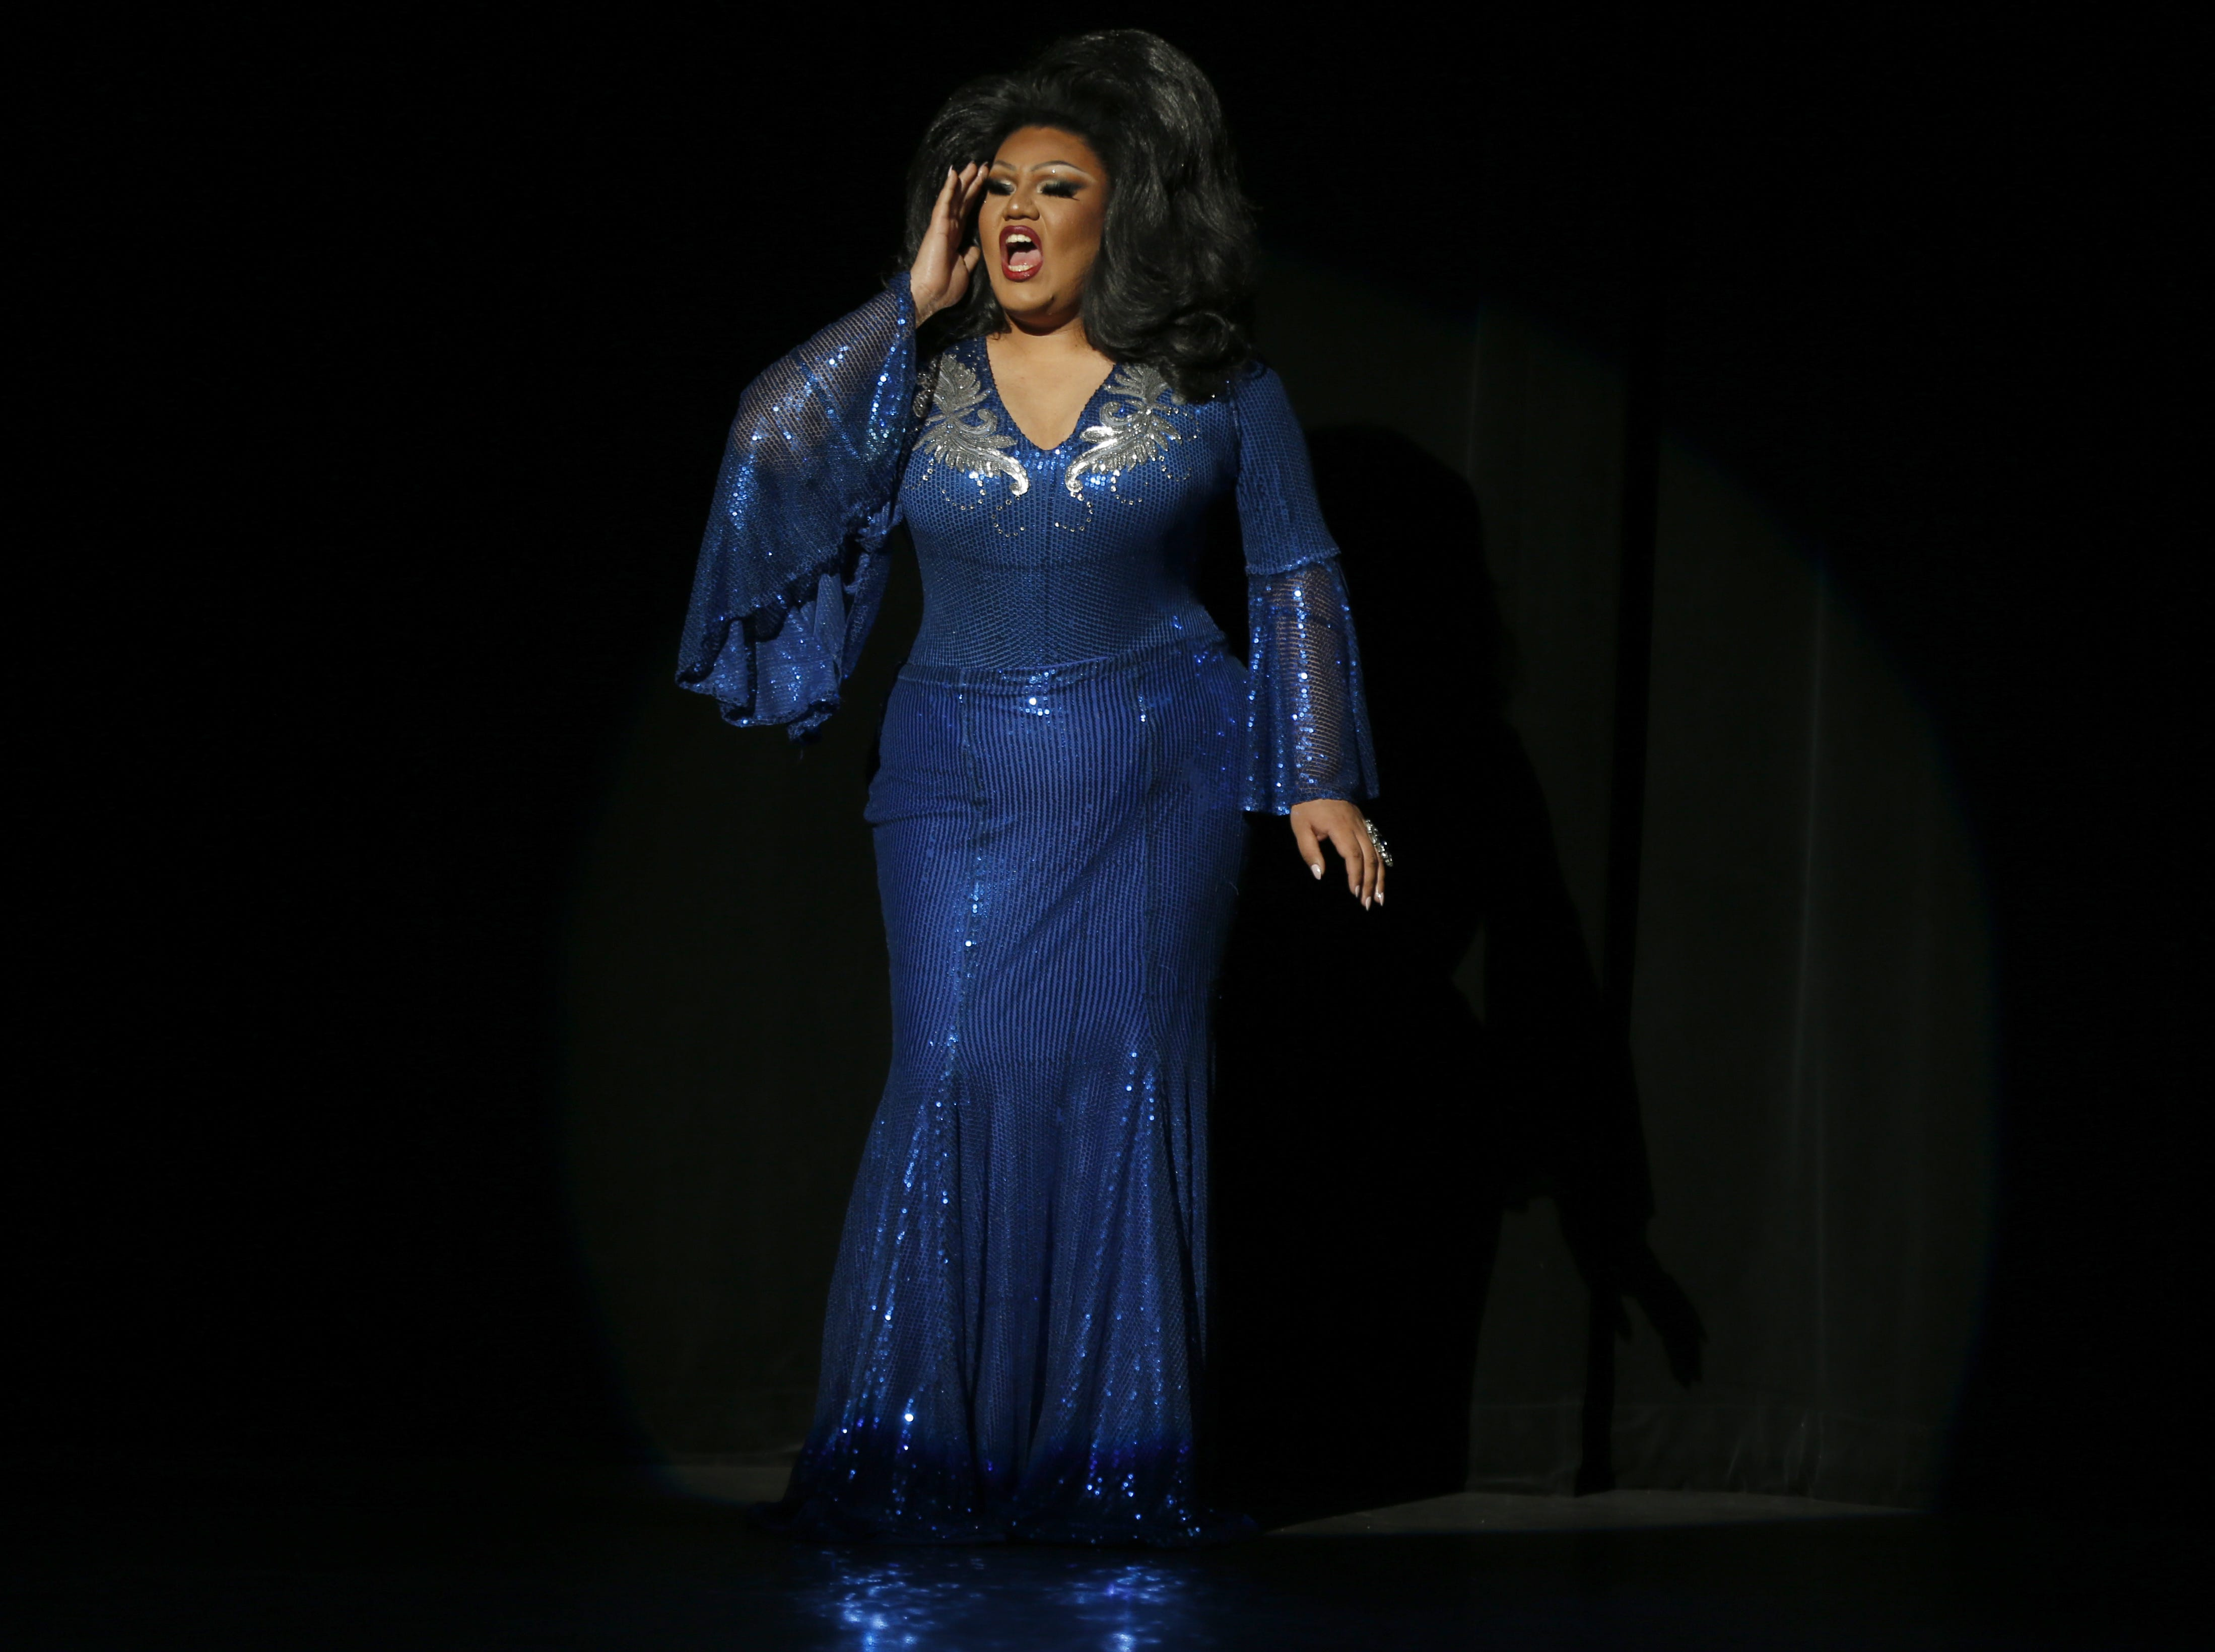 Miss Gay Phoenix America first alternate Felix performs during the Miss Gay Arizona America pageant 2019 at Tempe Center for the Arts on May 11, 2019.